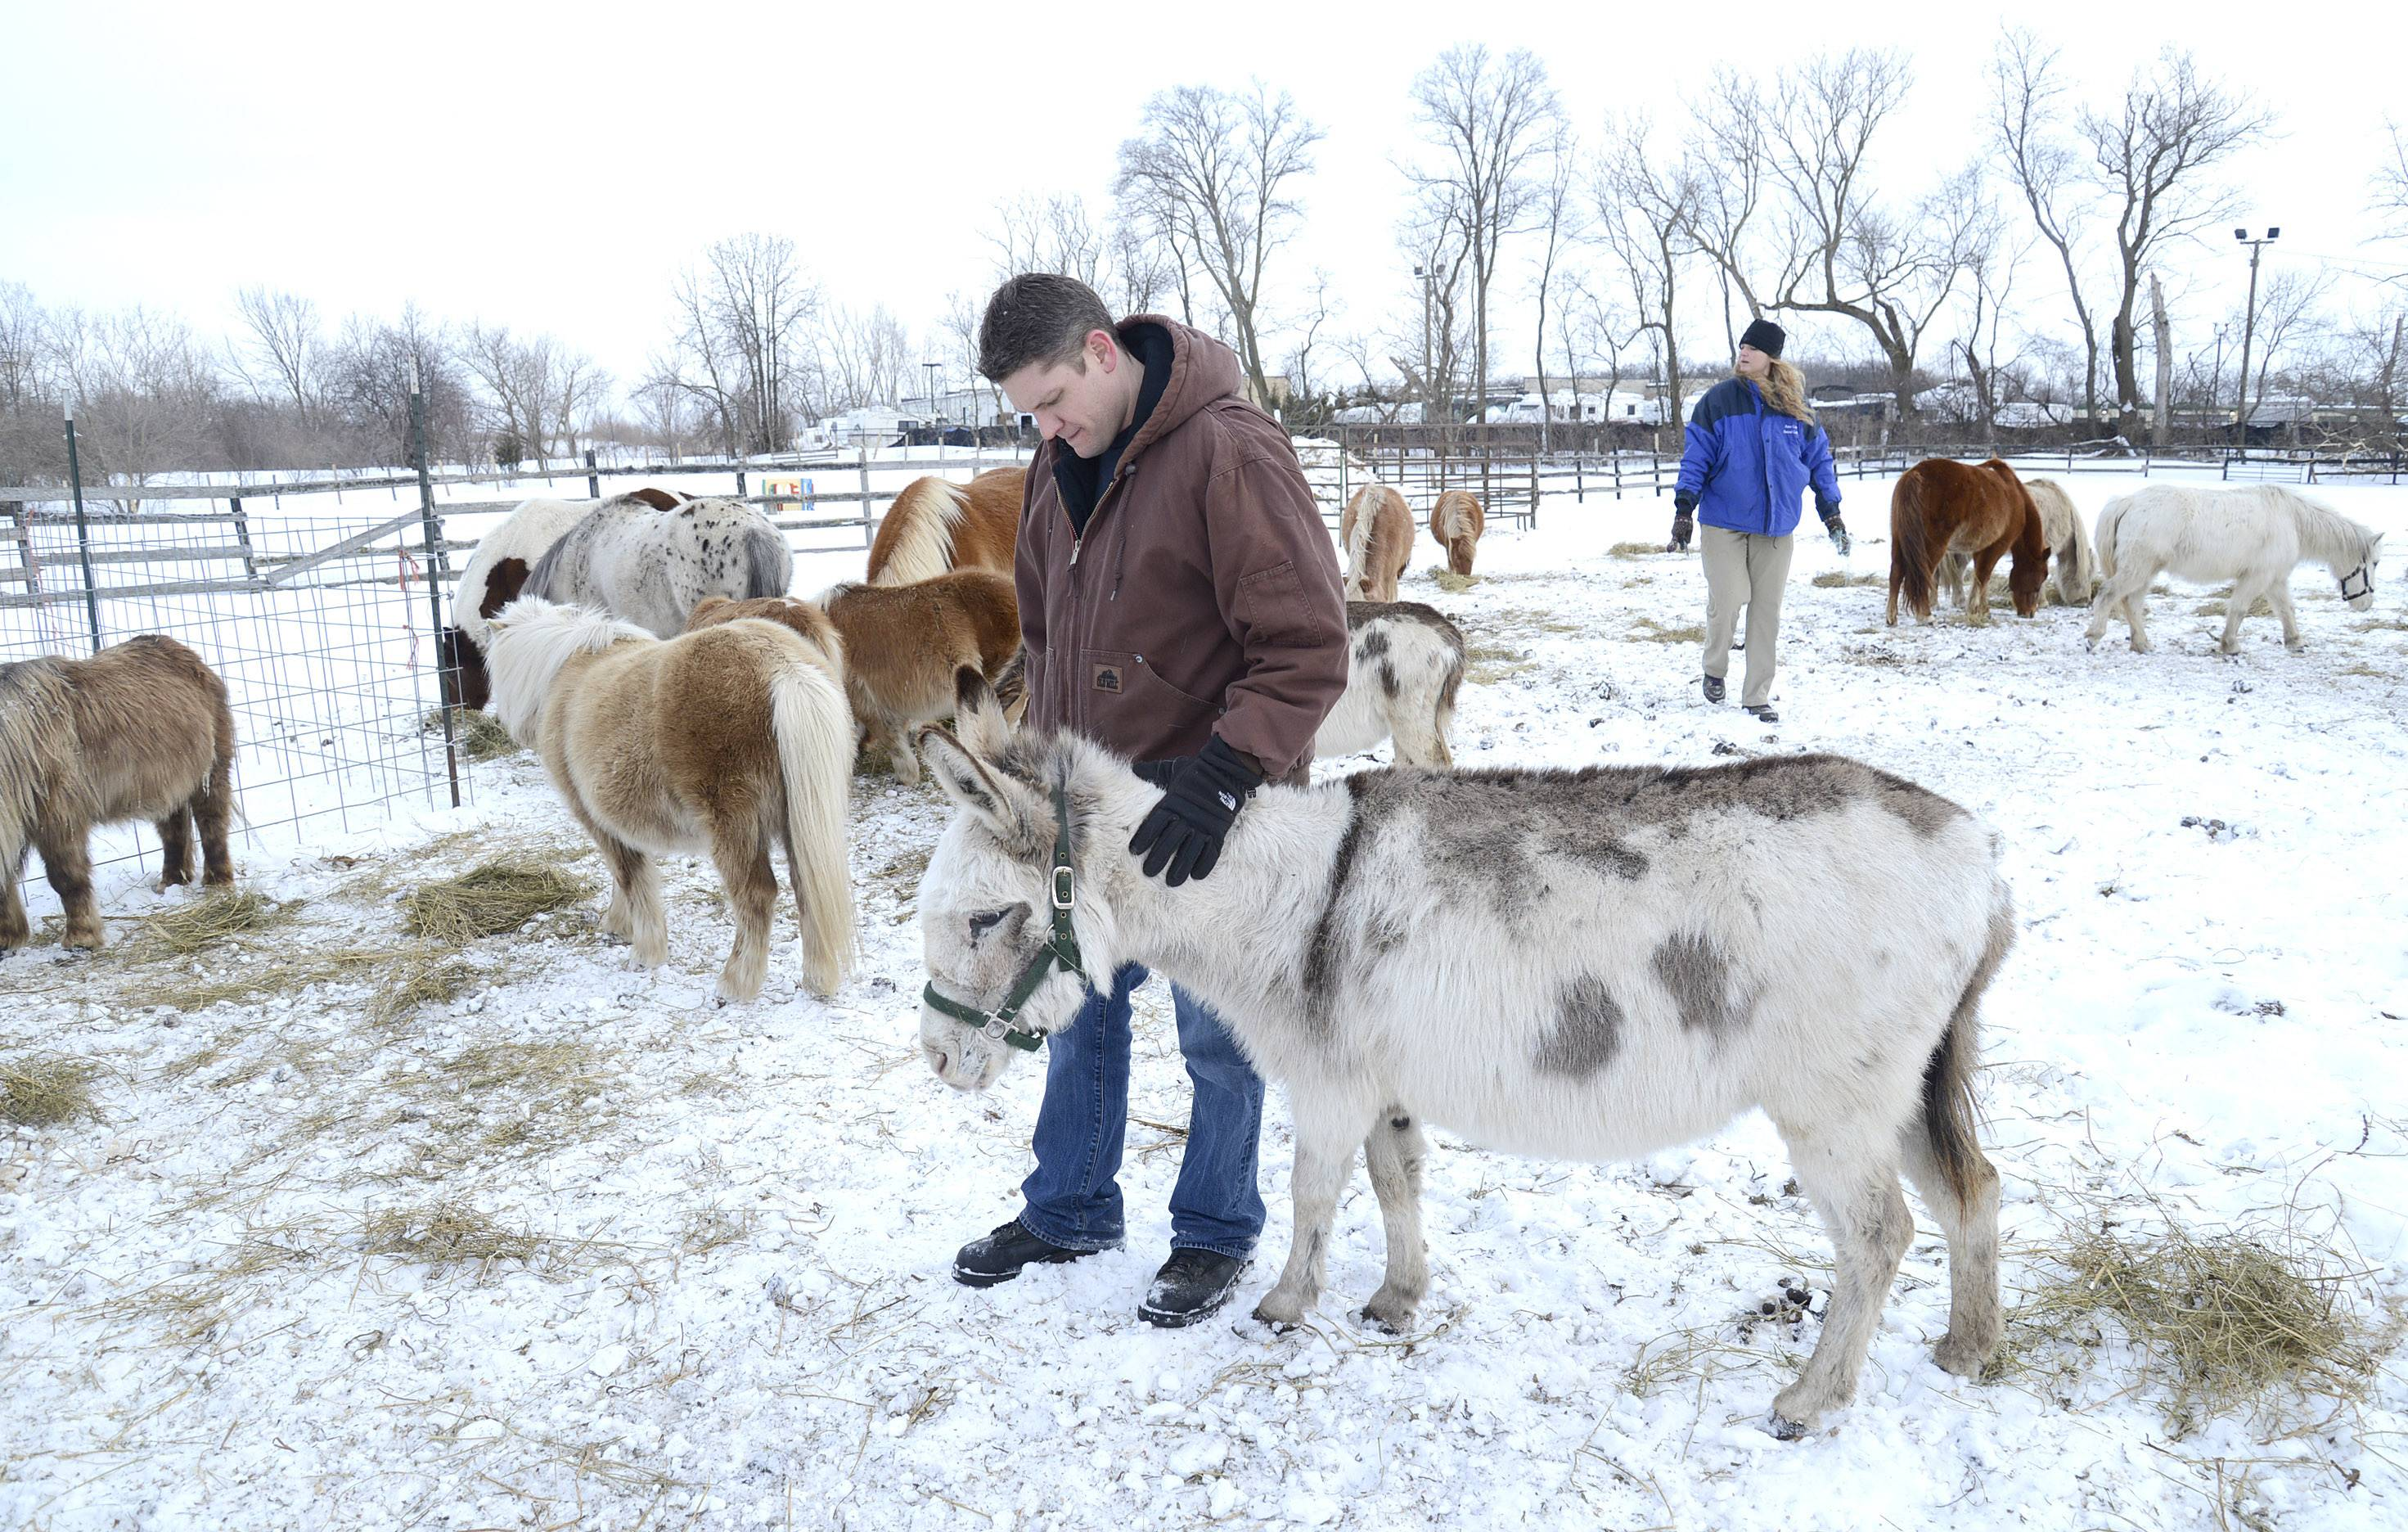 Kane County Animal Control Director Robert Sauceda pets a pregnant donkey Wednesday on a Hampshire farm, as animal control Warden Brianna Leland feeds hay to ponies and horses in one of the fields. Animal Control took over care of the animals Tuesday.